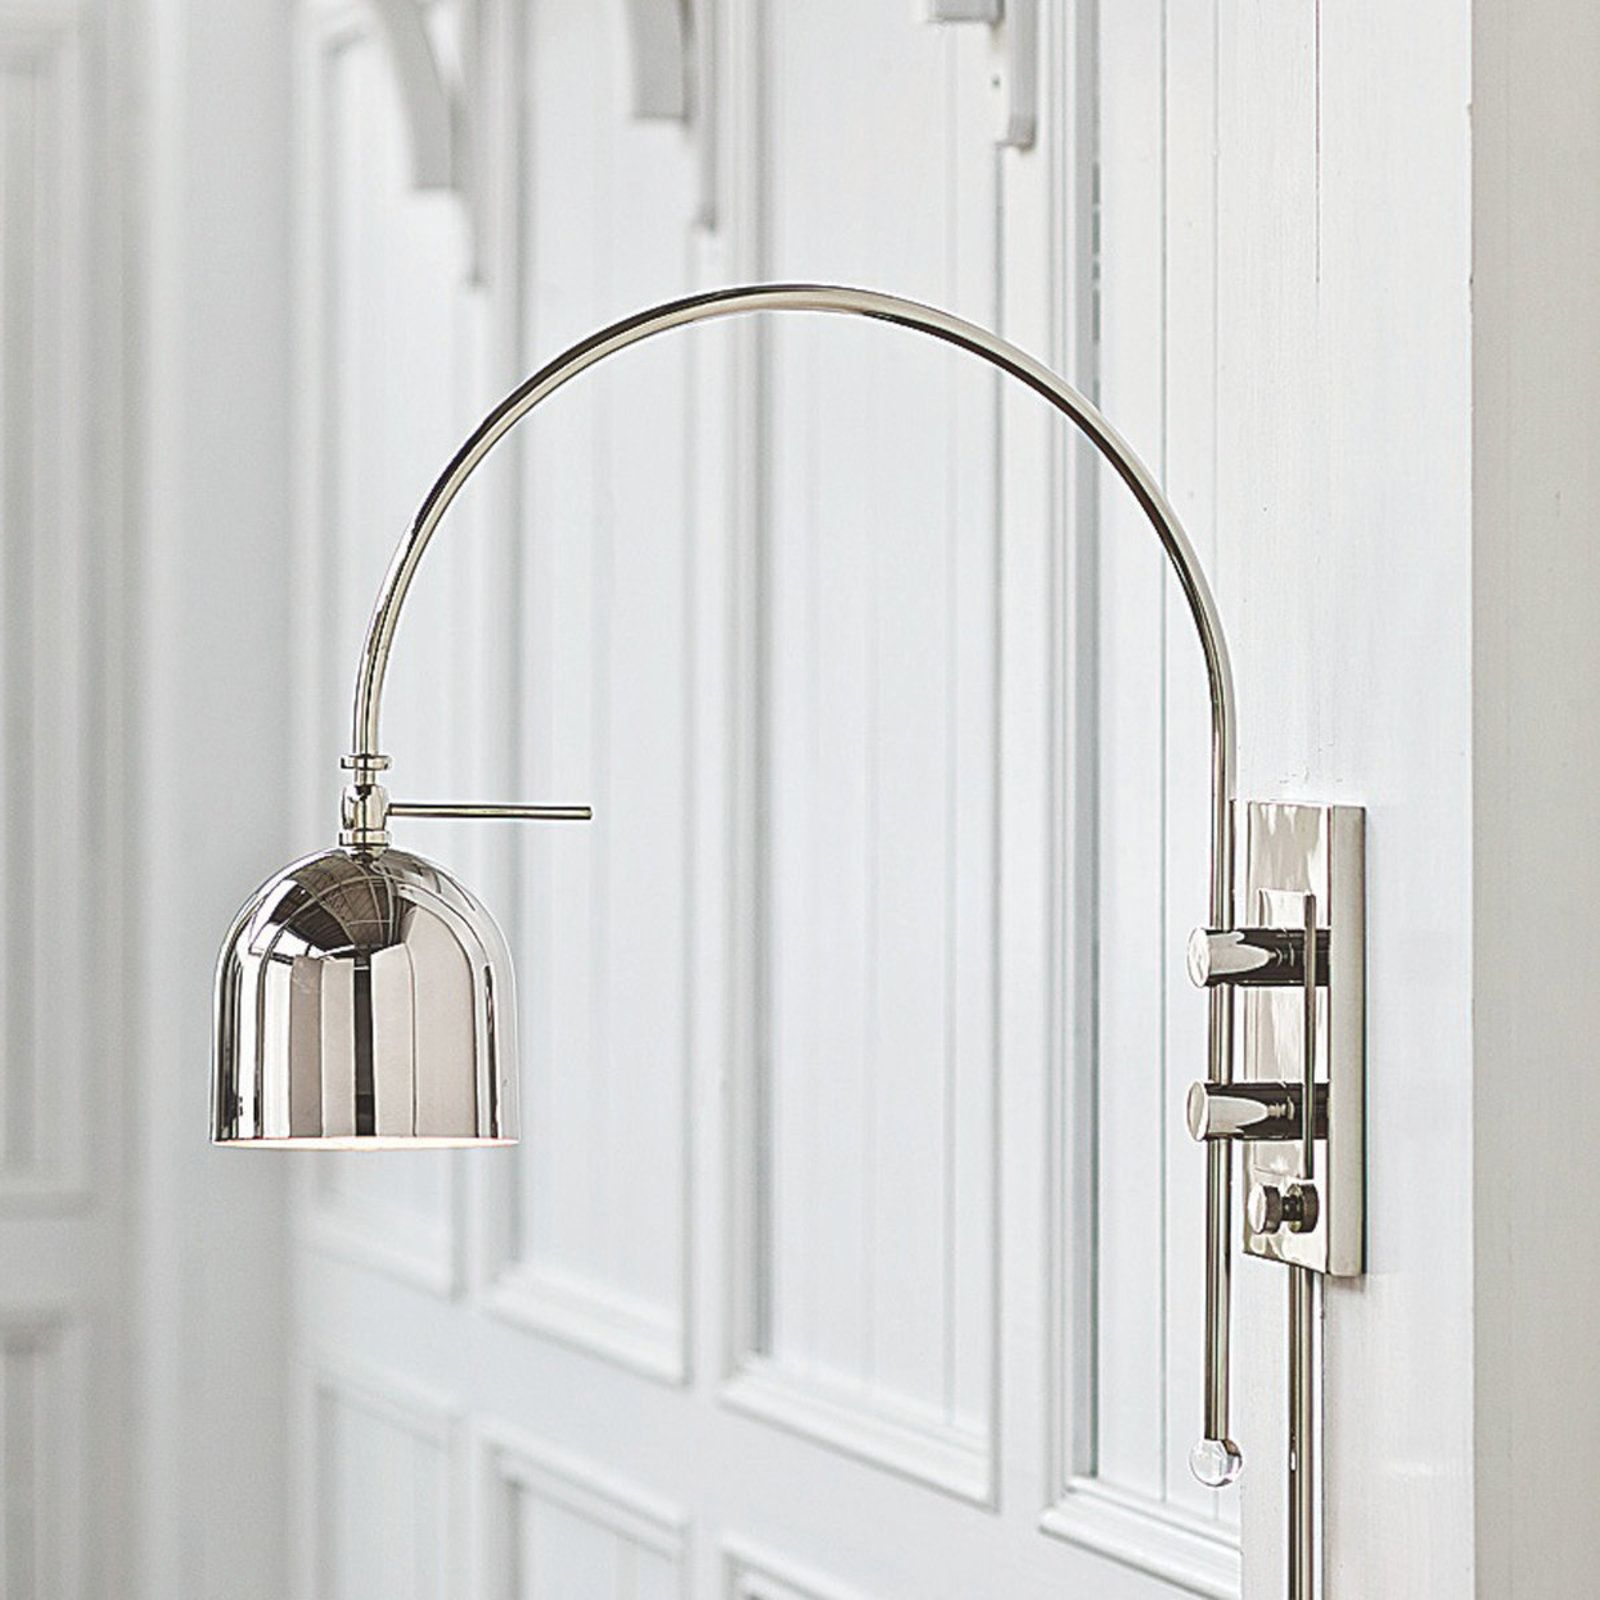 Arc dome shade modern swing arm wall light mozeypictures Choice Image